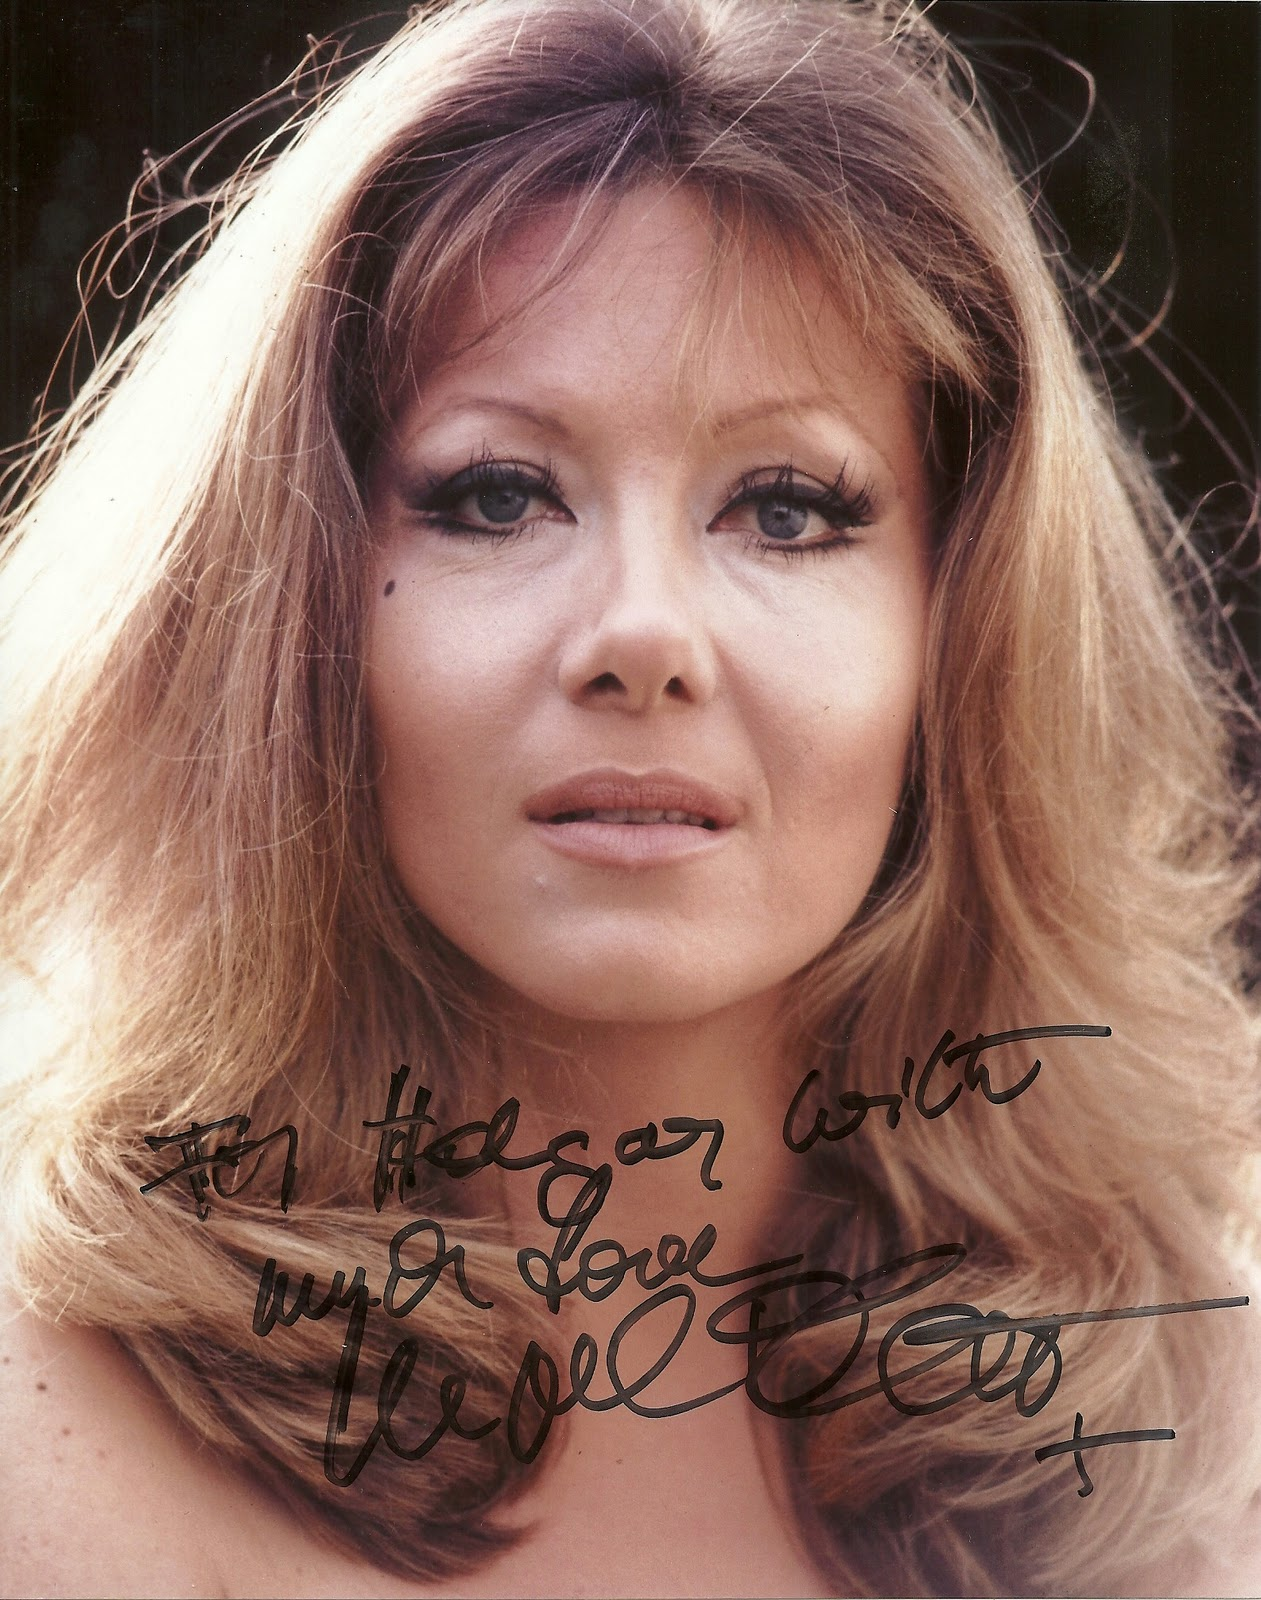 ingrid pitt wikiingrid pitt vampire, ingrid pitt wiki, ingrid pitt, ingrid pitt actress, ingrid pitt tumblr, ingrid pitt cradle of filth, ingrid pitt photos, ingrid pitt cause of death, ingrid pitt imdb, ingrid pitt death, ingrid pitt doctor who, ingrid pitt pictures, ingrid pitt feet, ingrid pitt beyond the forest